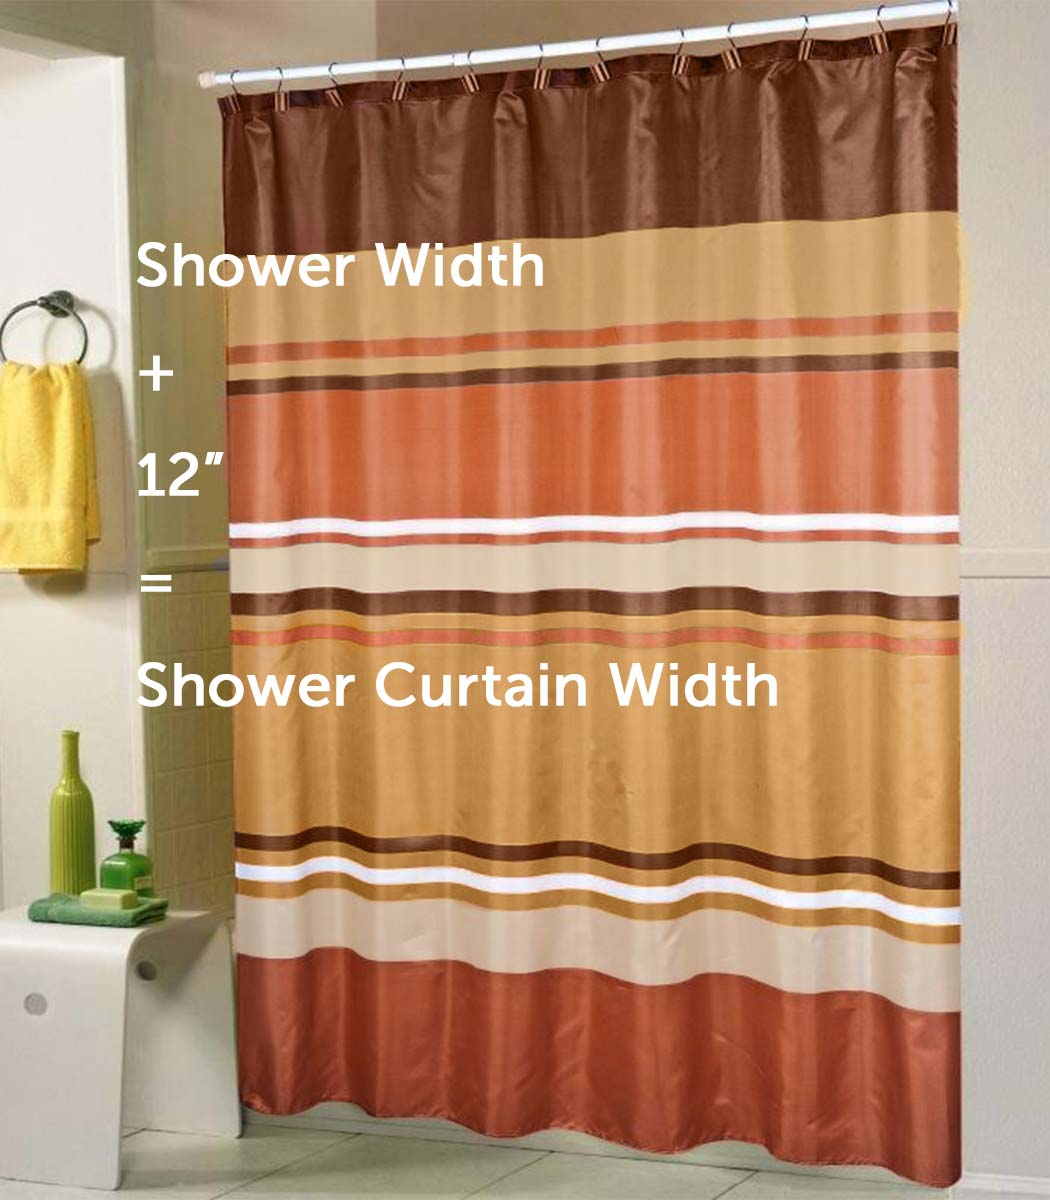 82 Shower Curtain A Standard Shower Curtain Size Guide Linen Store